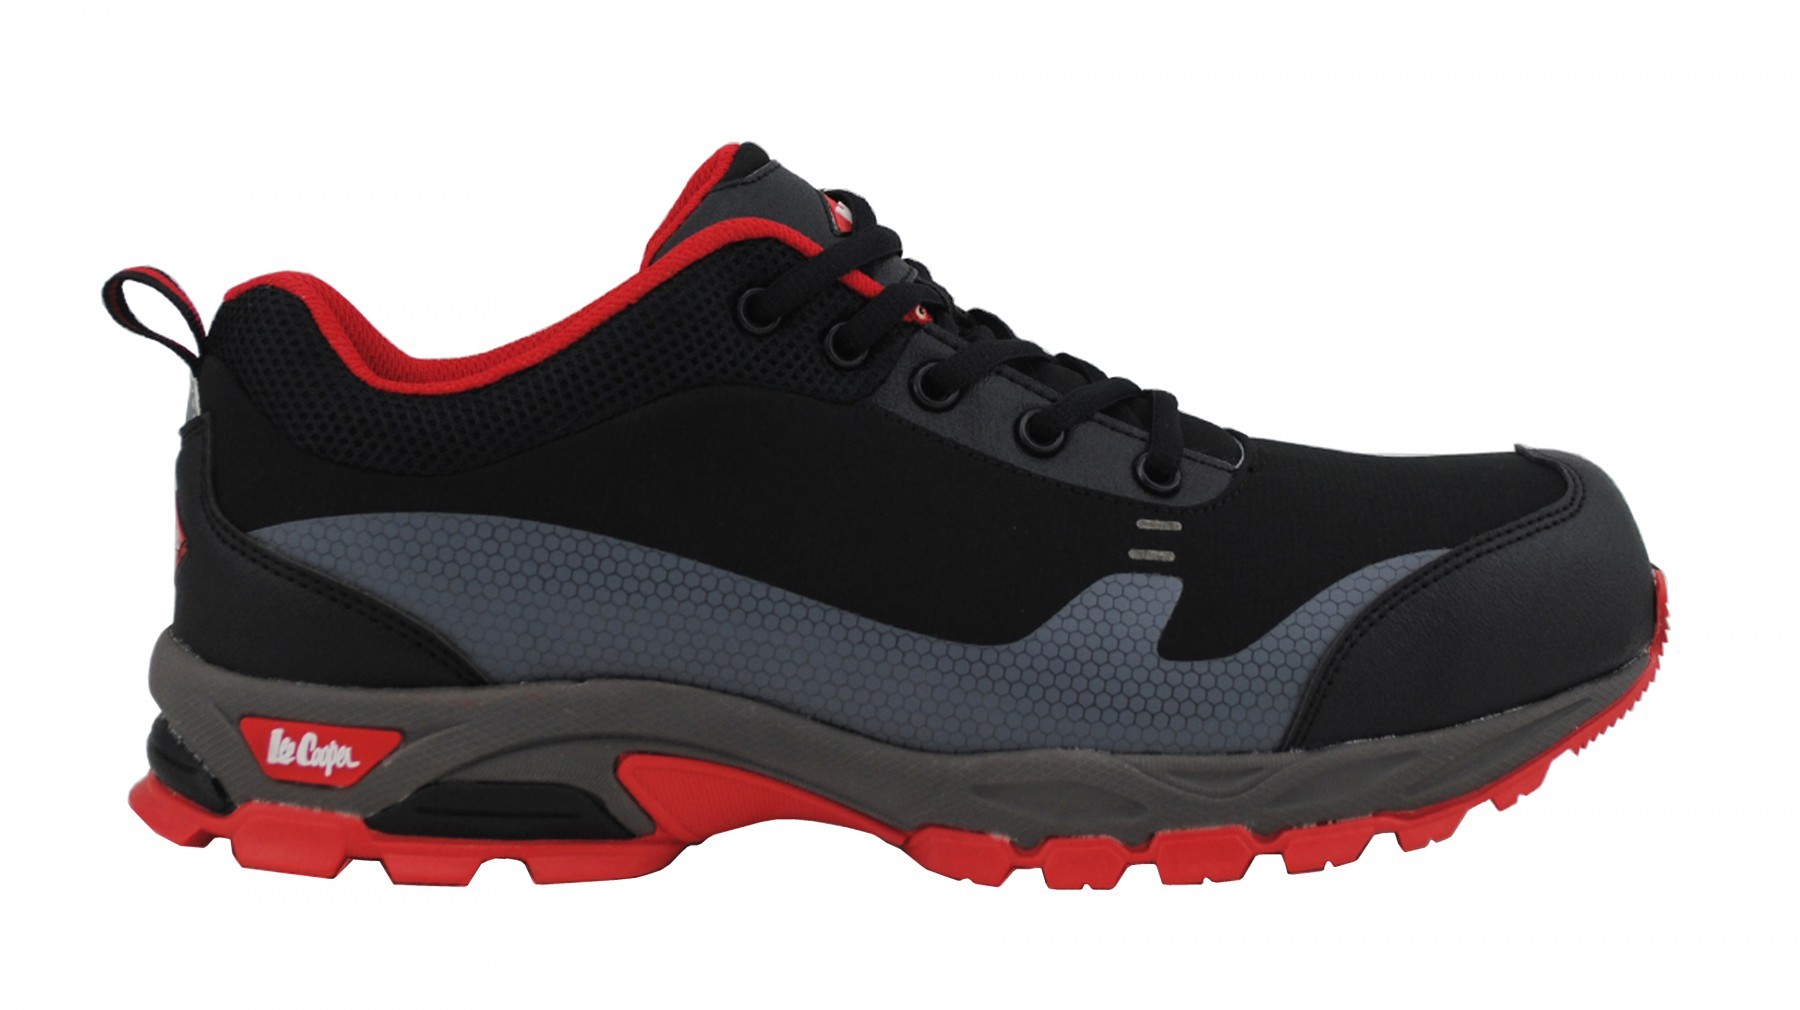 SOFTSHELL SAFETY SHOE SIDE VIEW